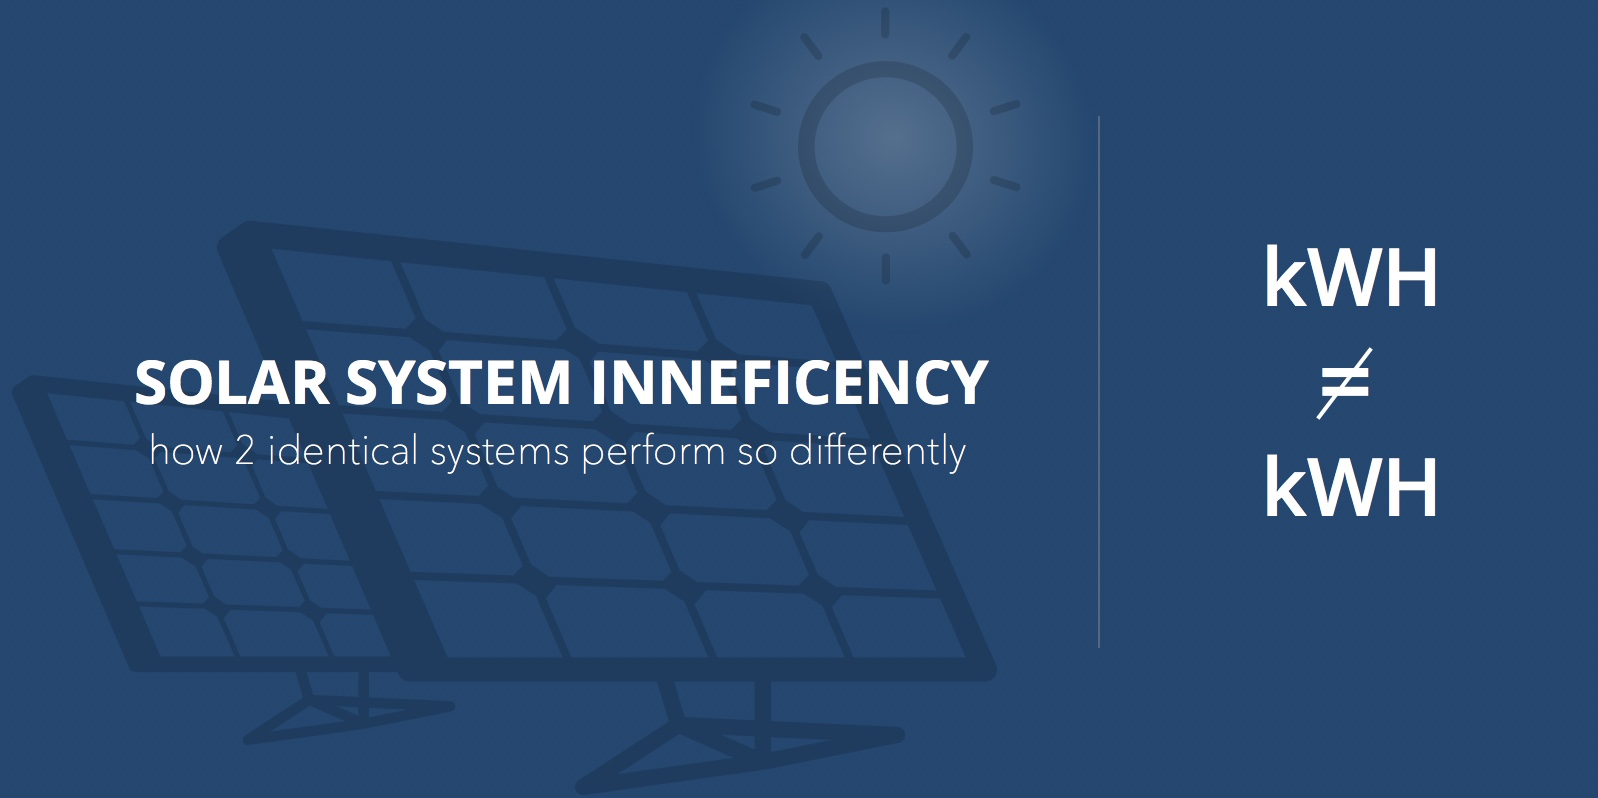 inefficient solar systems